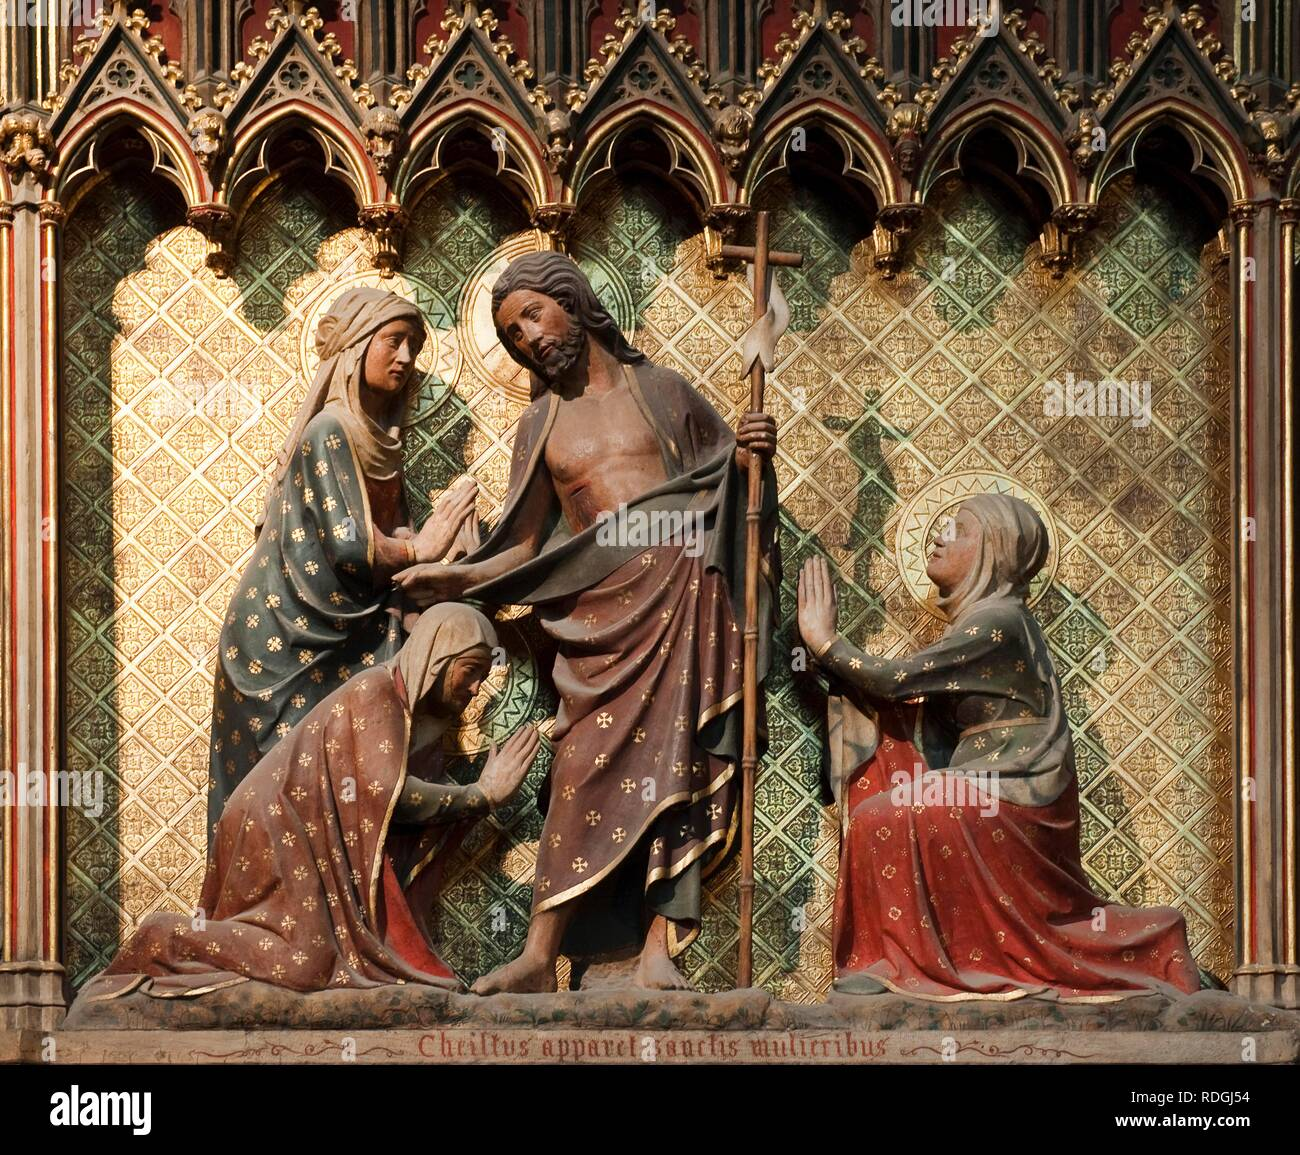 Scene of the life of Christ, the risen Christ appears to the Holy Women, Notre Dame de Paris cathedral, Paris, France, Europe - Stock Image